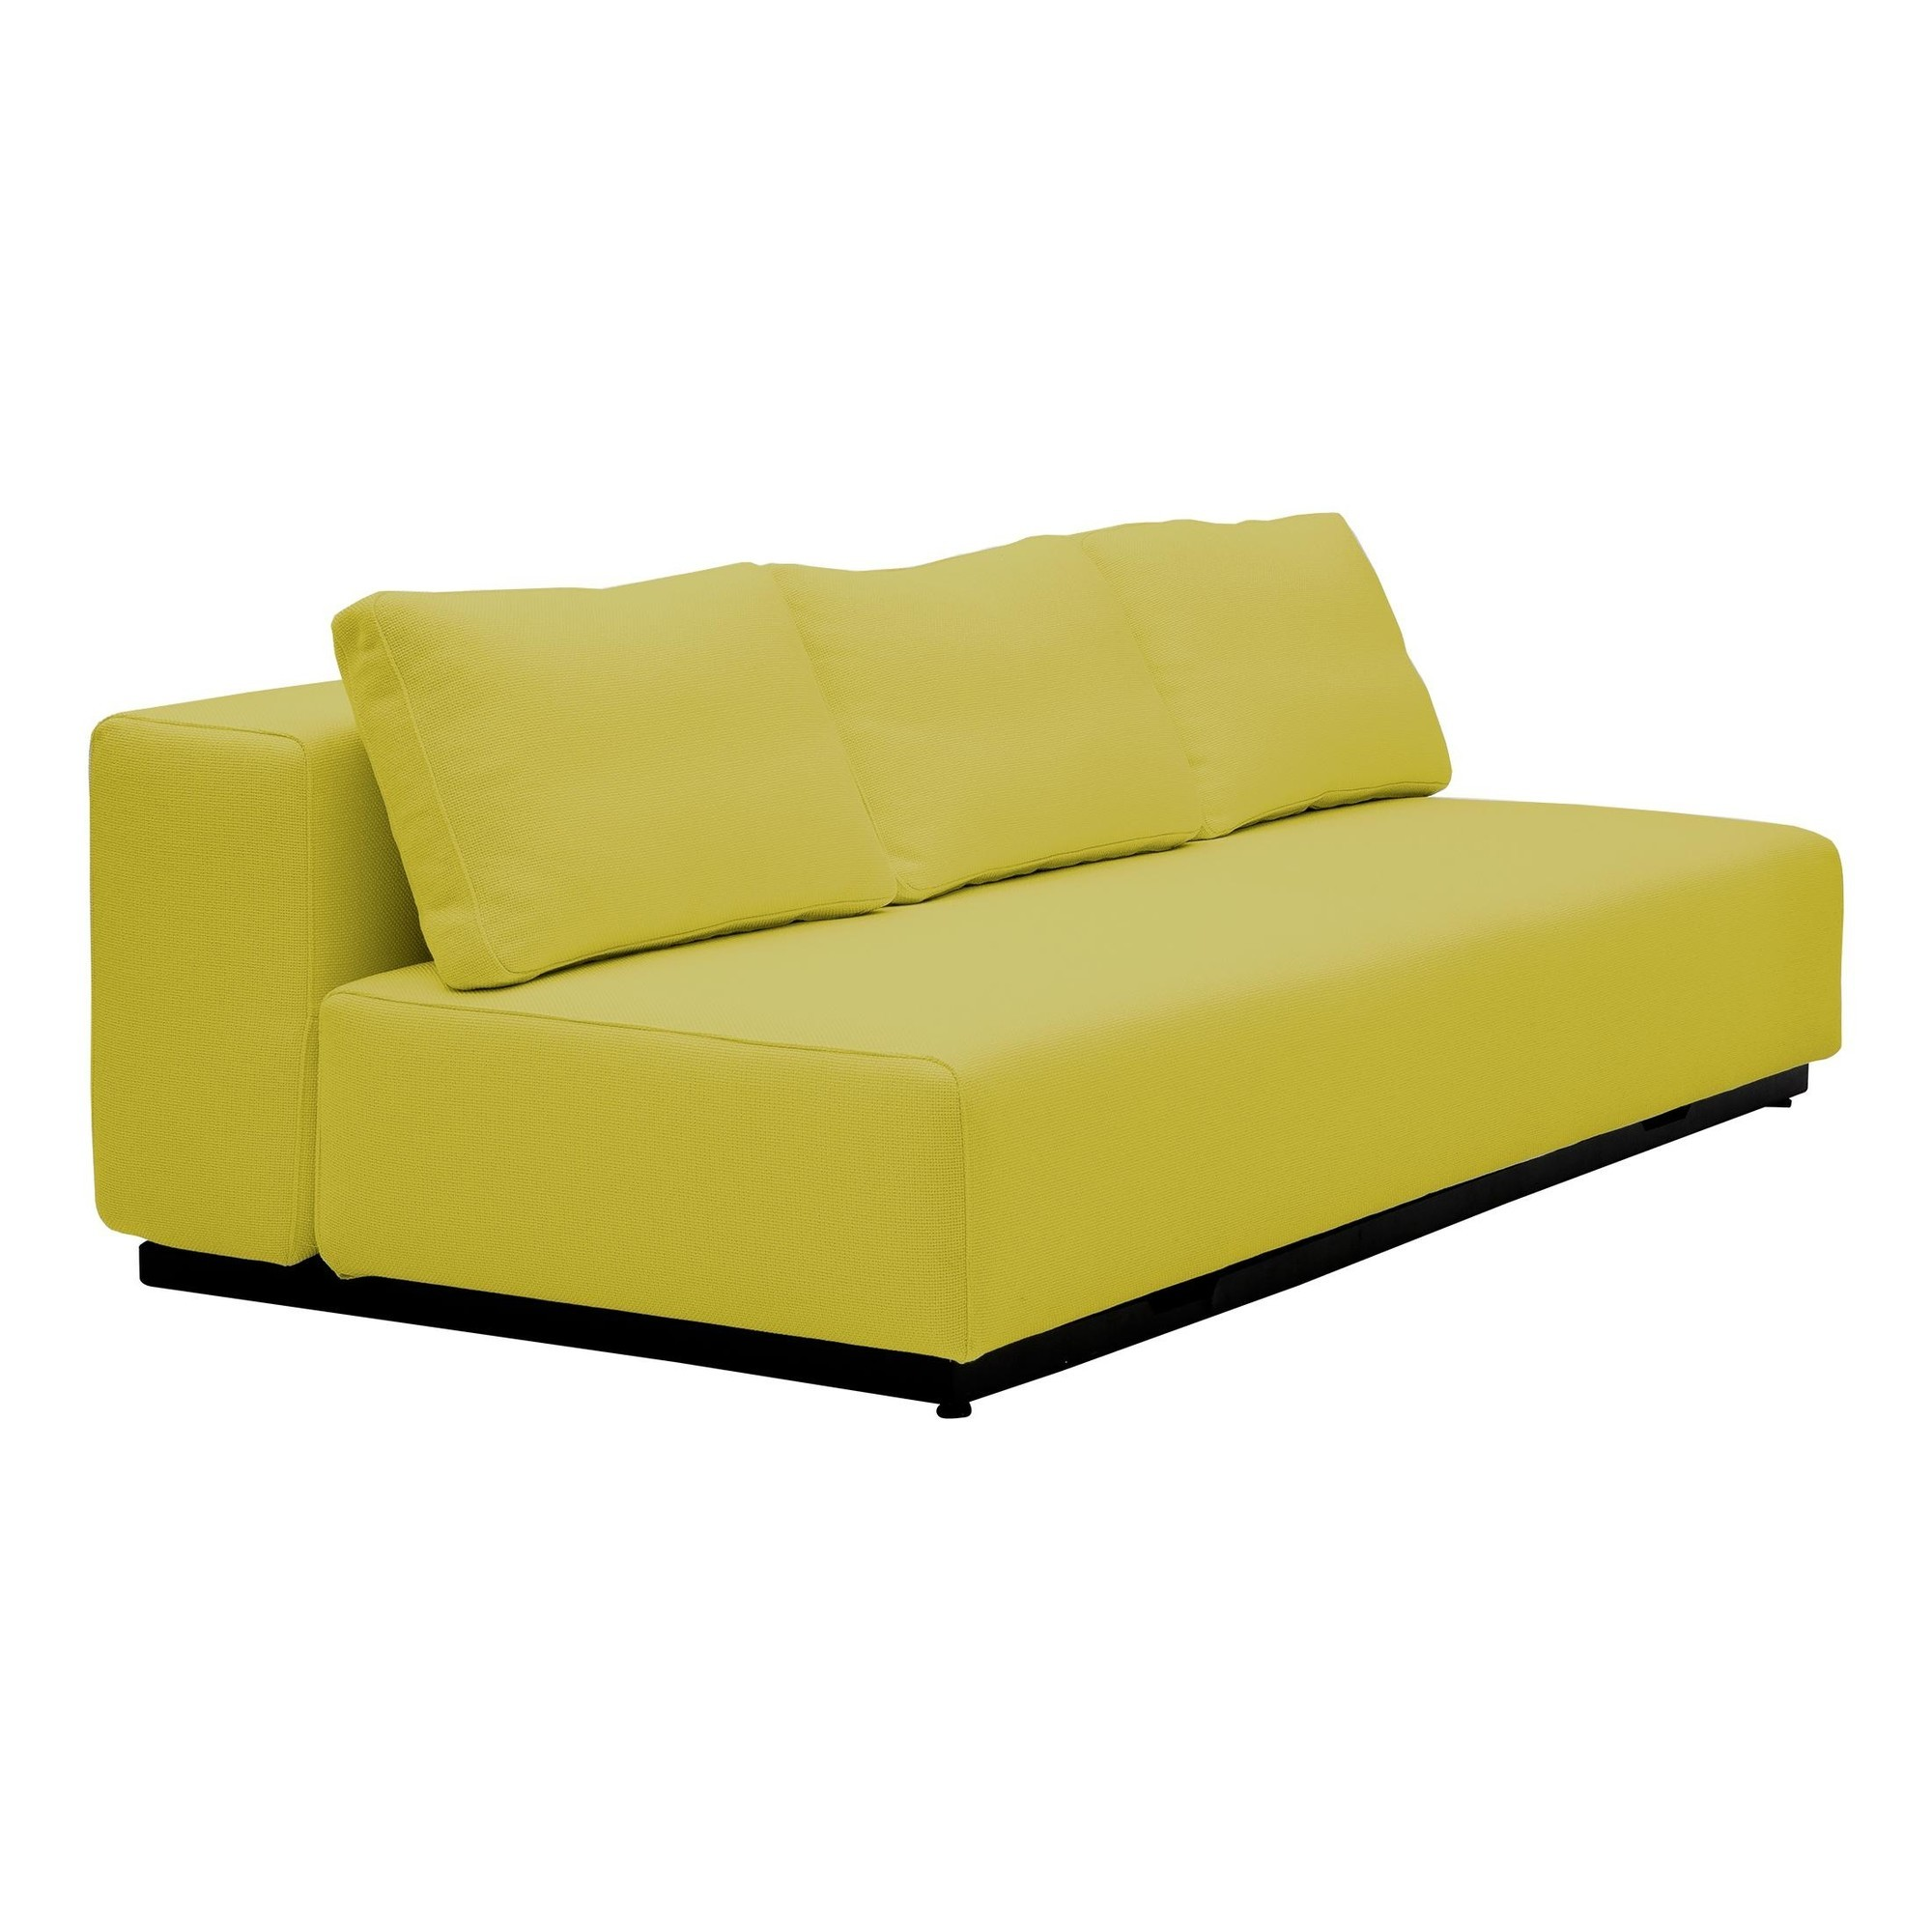 Schlafsofa Gelb Nevada 3 P Sofa Bed